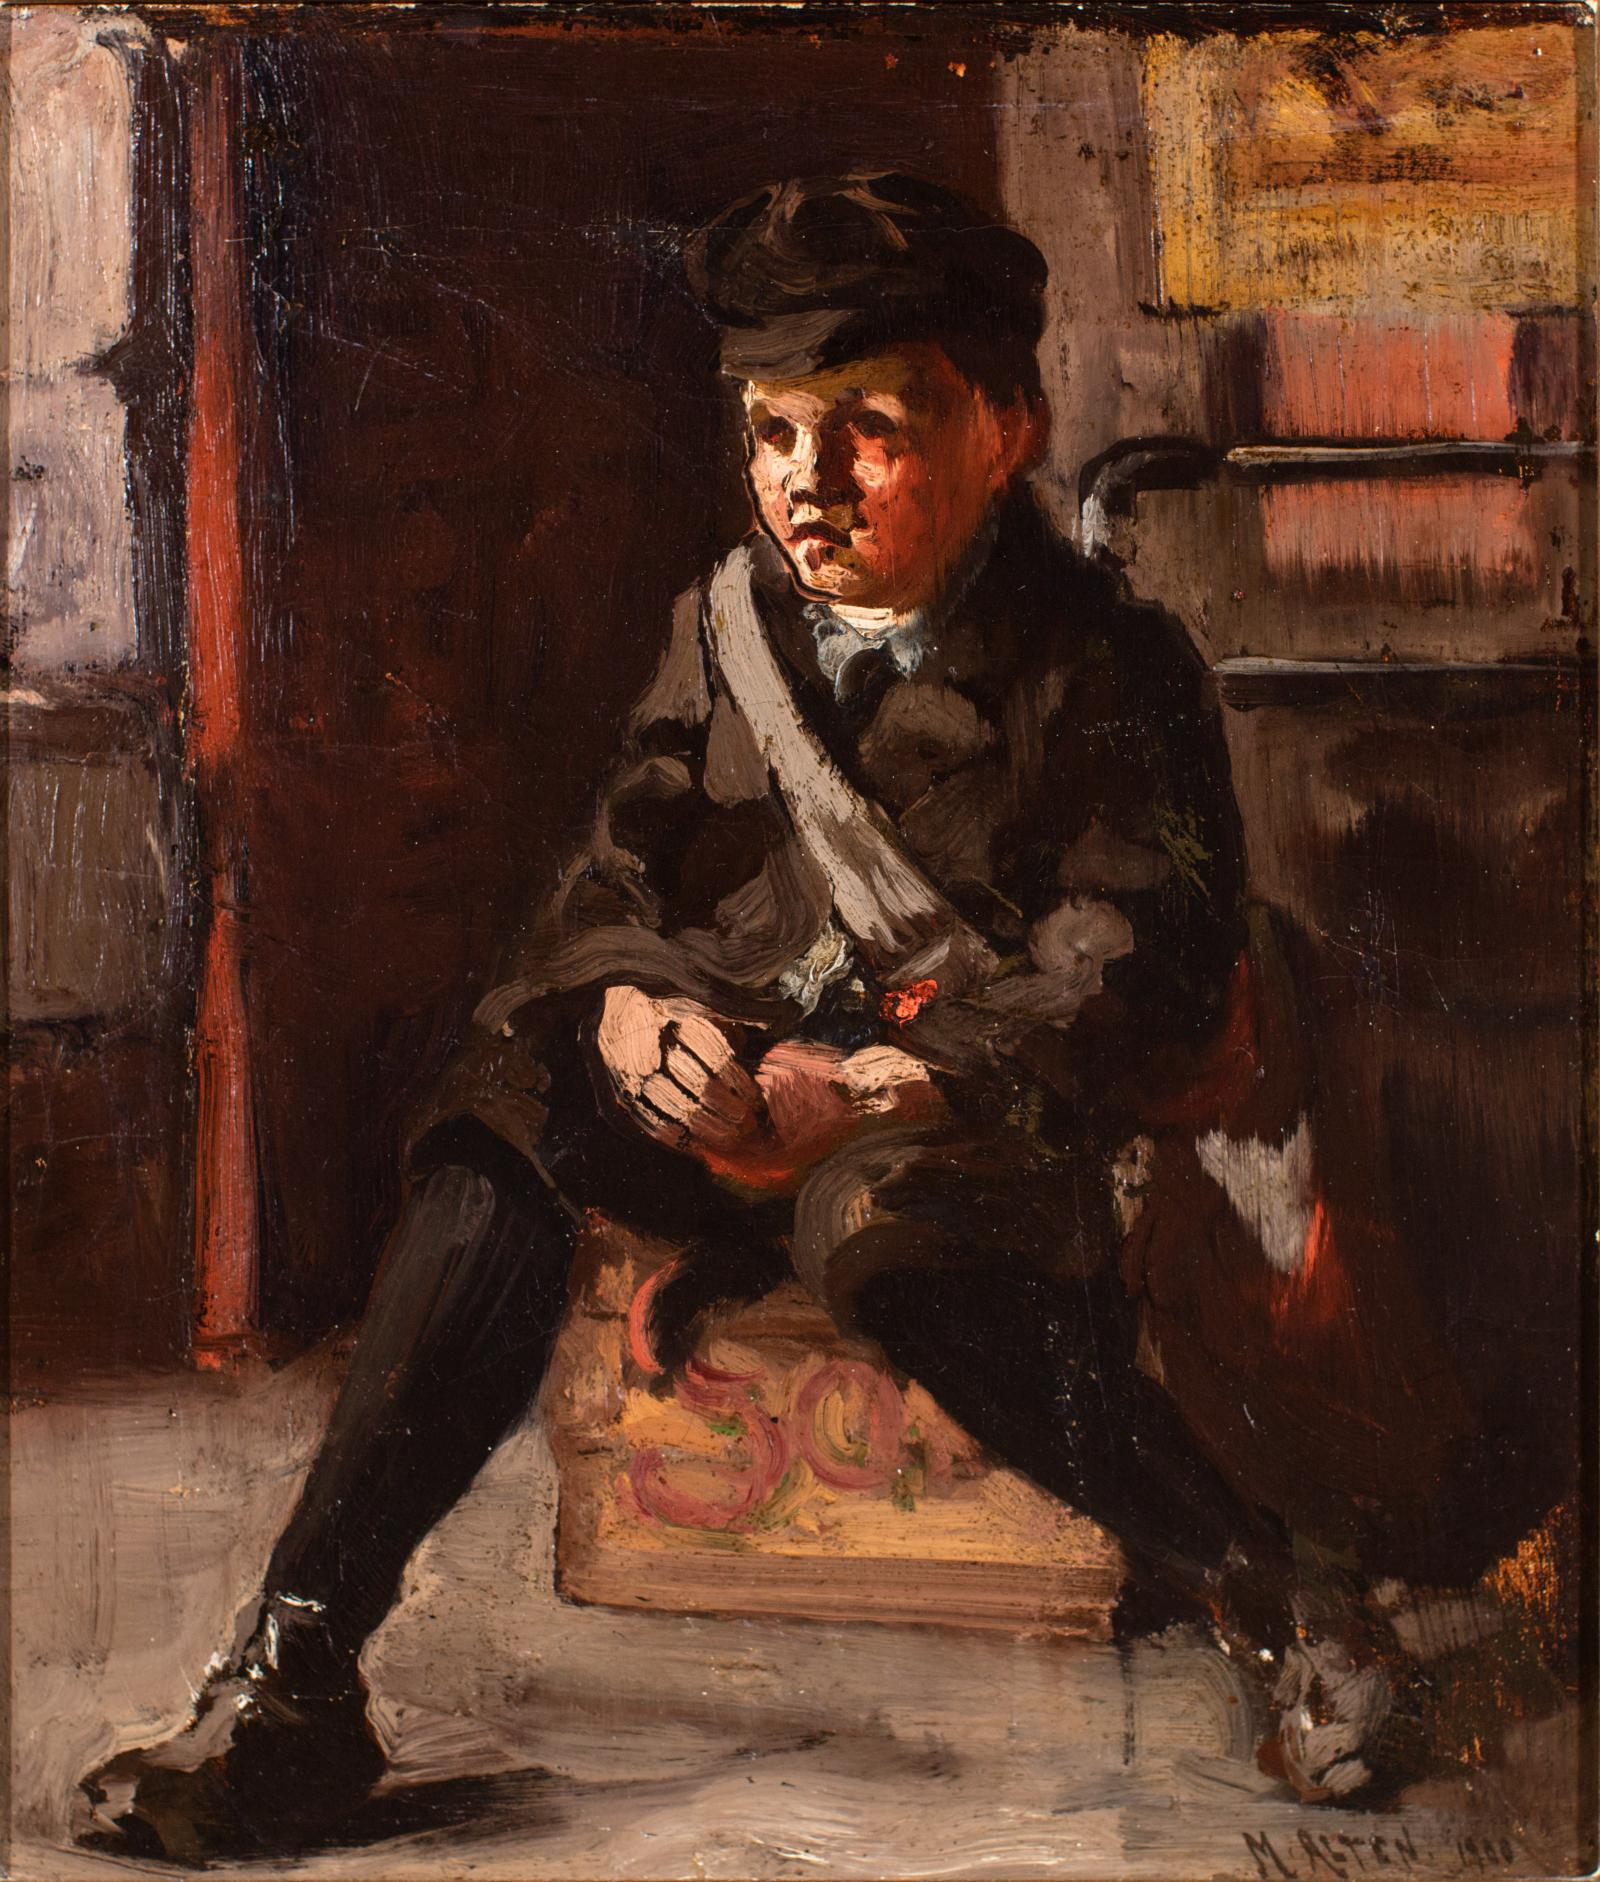 Little boy dressed in all black with a white bag slung over his shoulder sits on a crate.